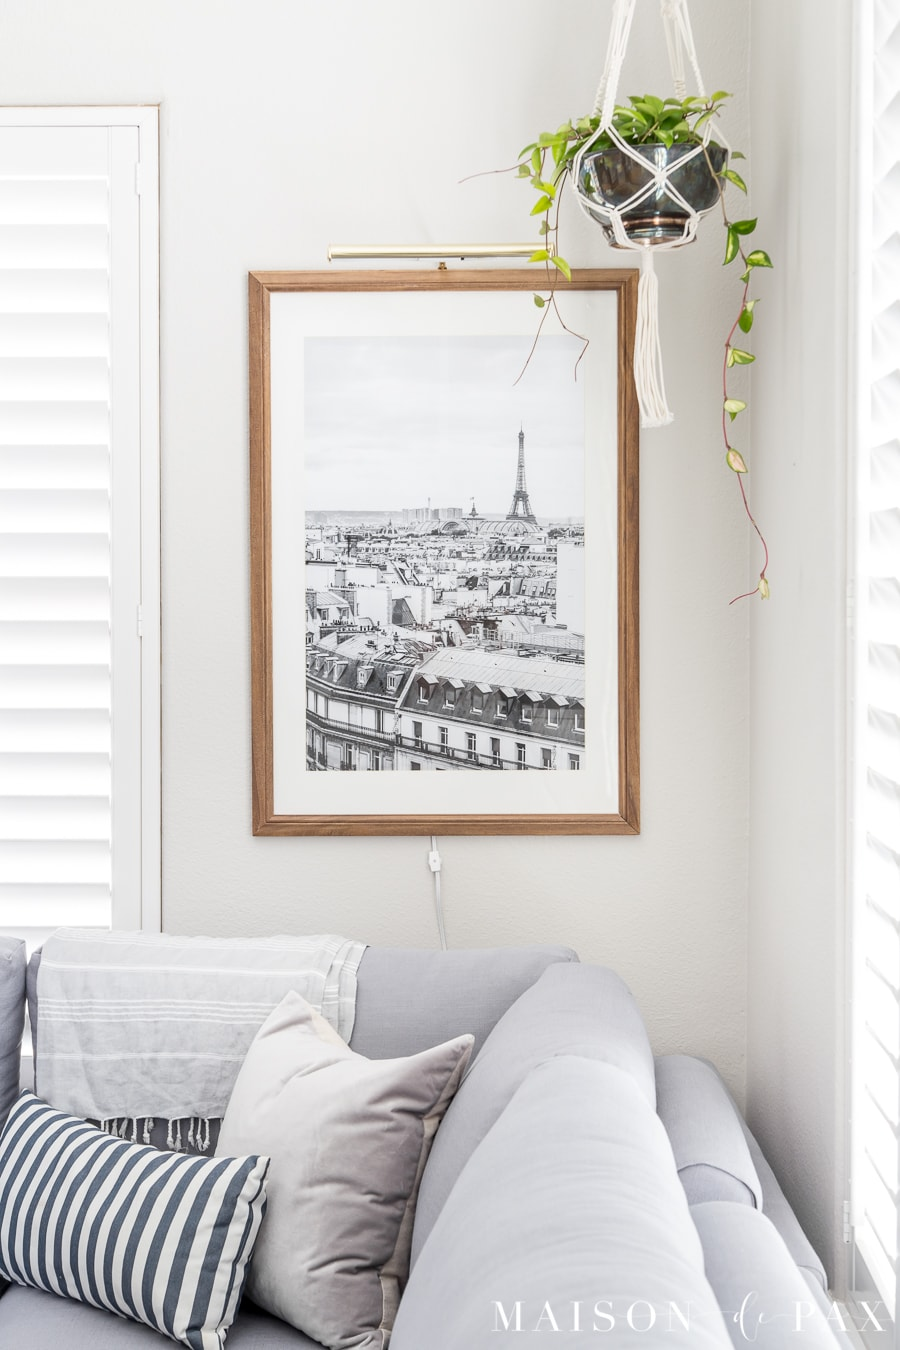 Find out the secret to inexpensive large wall art! This black and white photo is beautiful in a natural wood frame with a brass picture light above. #simplewallart #wallart #livingroomdecor